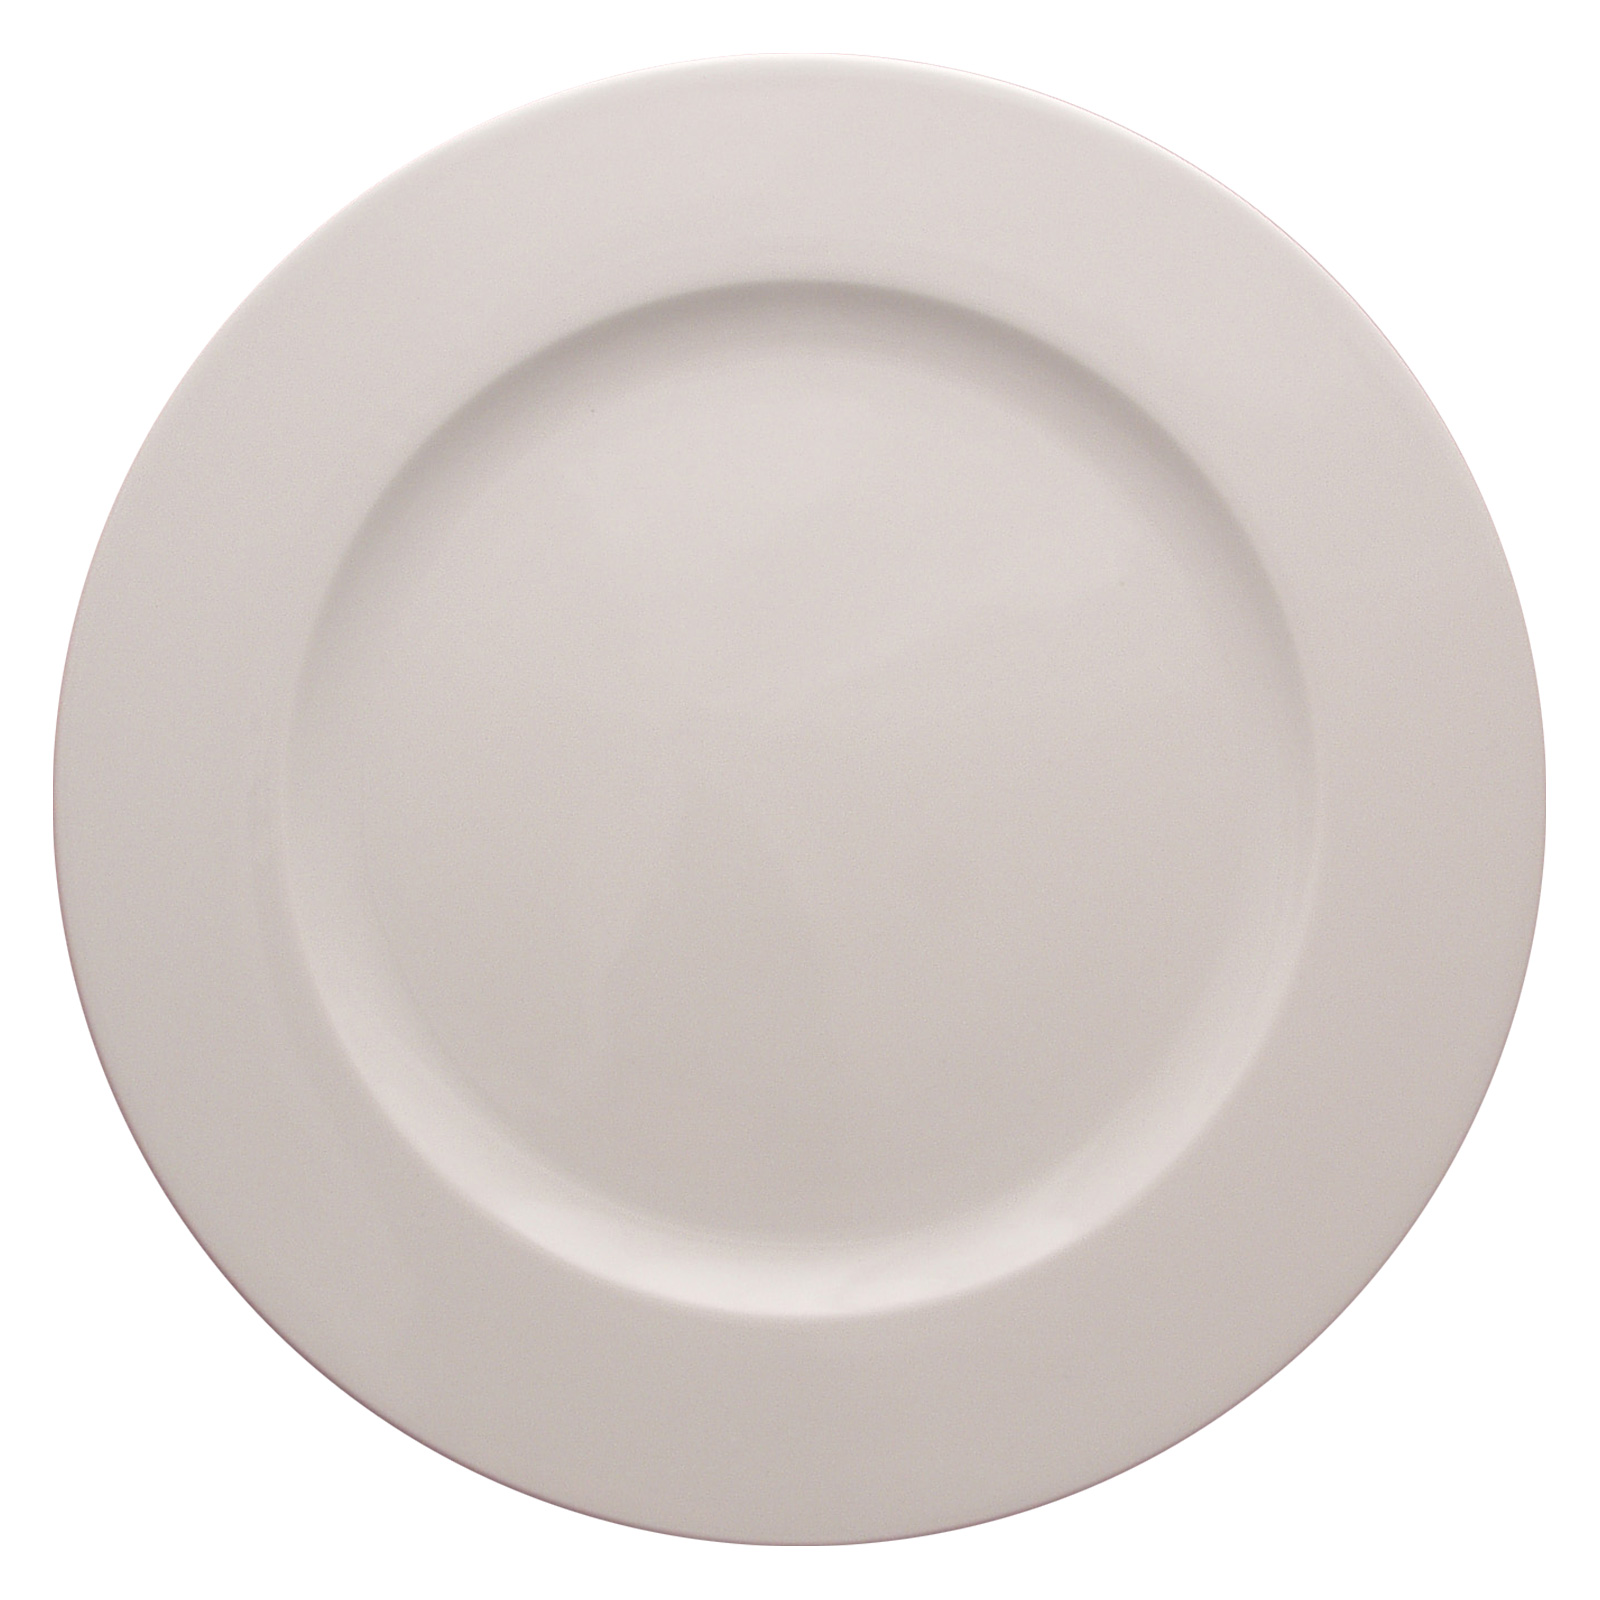 Set of 24 Roma Plates Medium by Lubiana